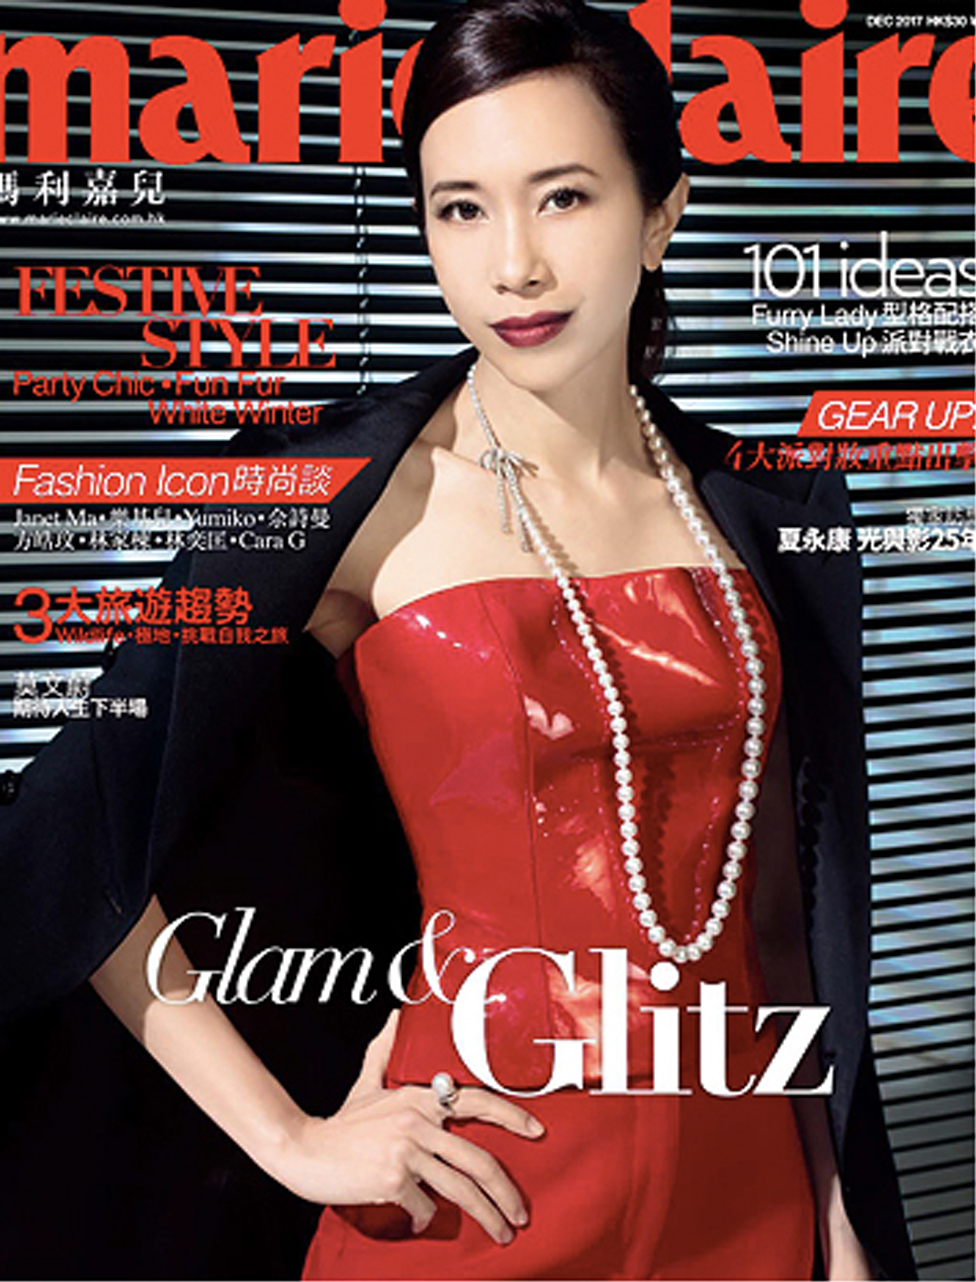 MarieClaire_WingShya_Dec2017 issue cover.jpg